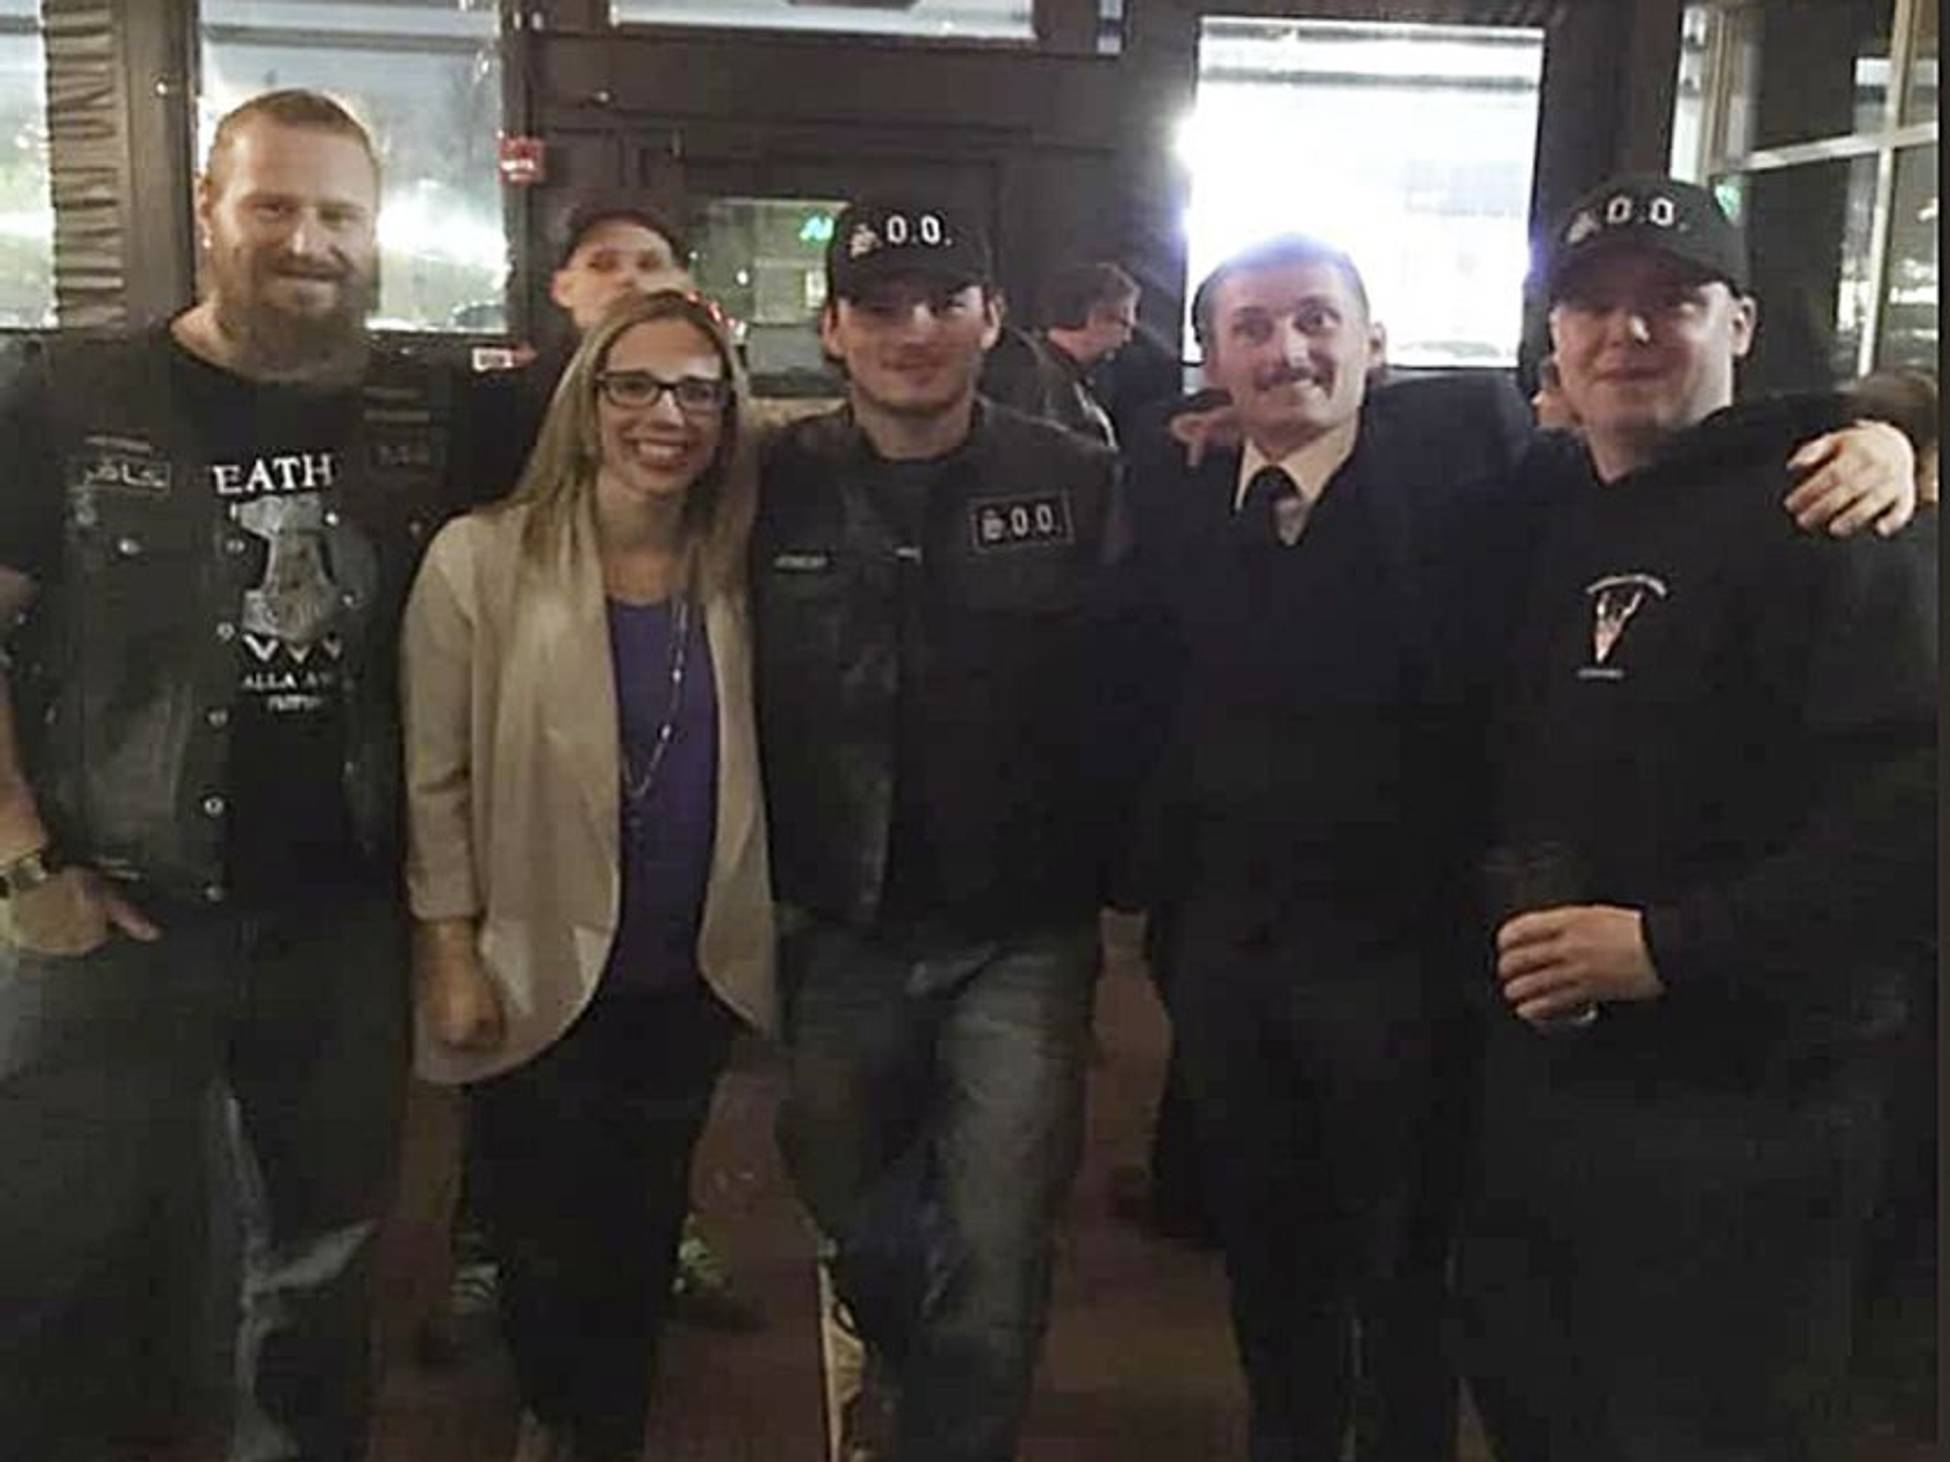 The United Conservative Party and the Soldiers of Odin